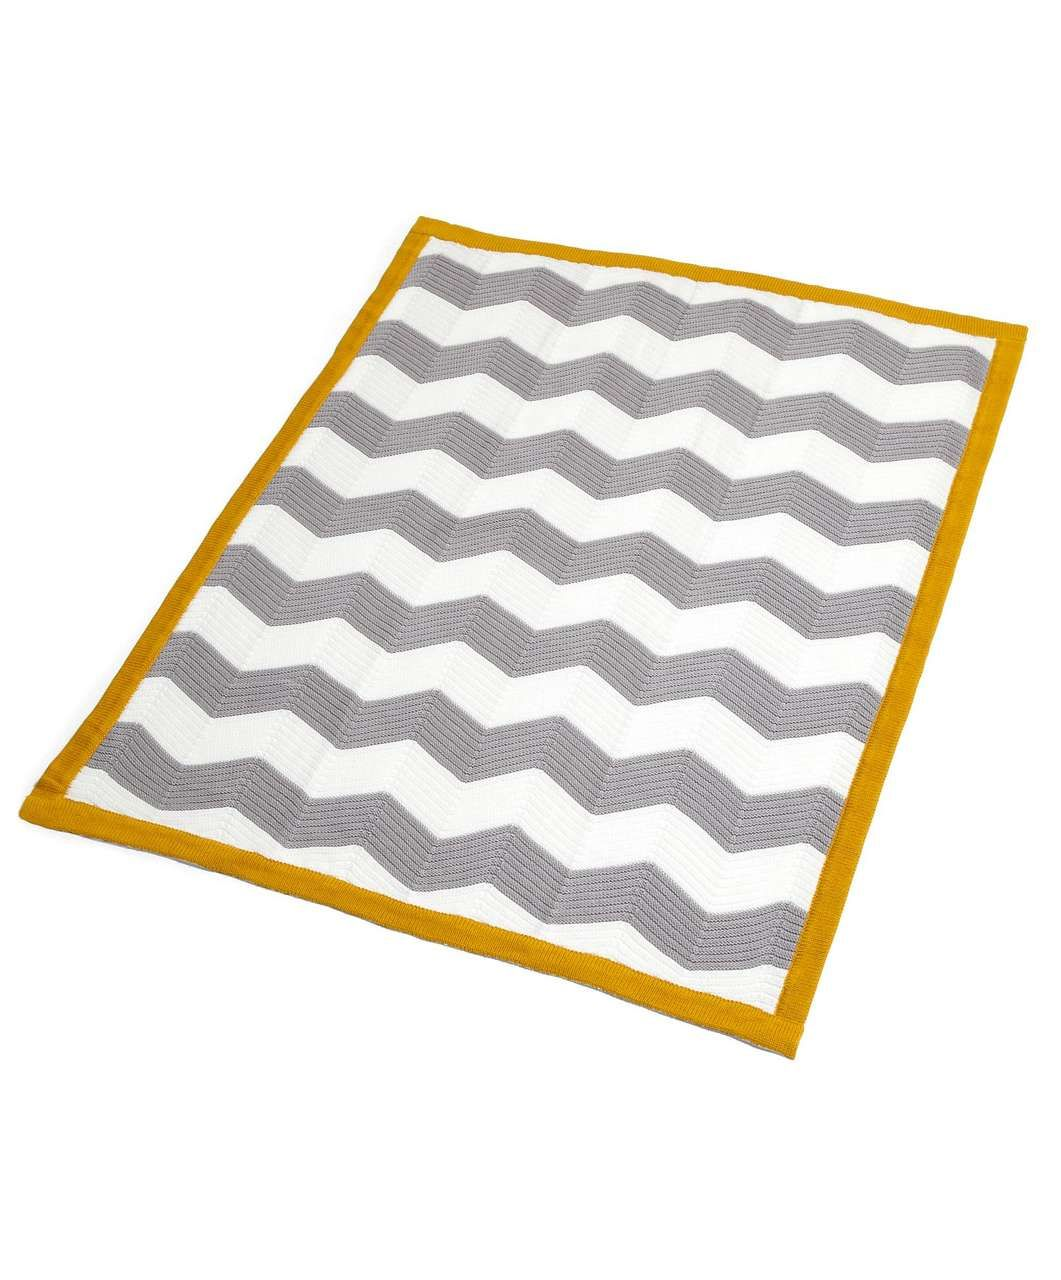 Patternology - Chevron Knitted Blanket - 70 x 90cm - Patternology - Mamas & Papas